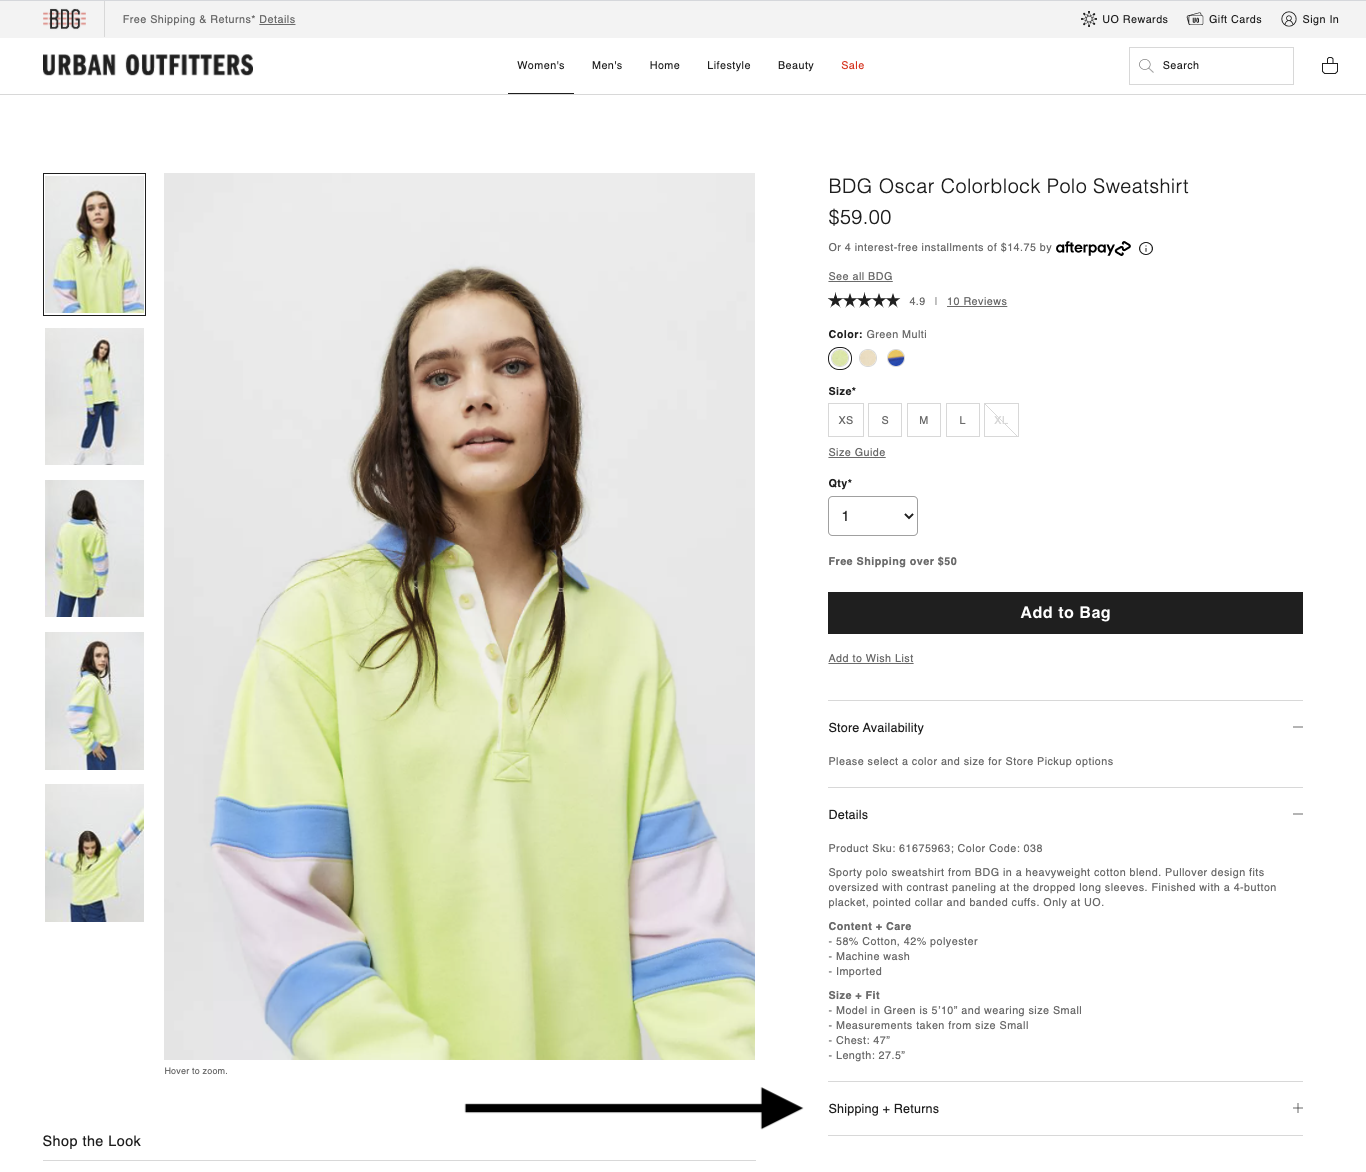 Urban Outfitters' return policy visibility example